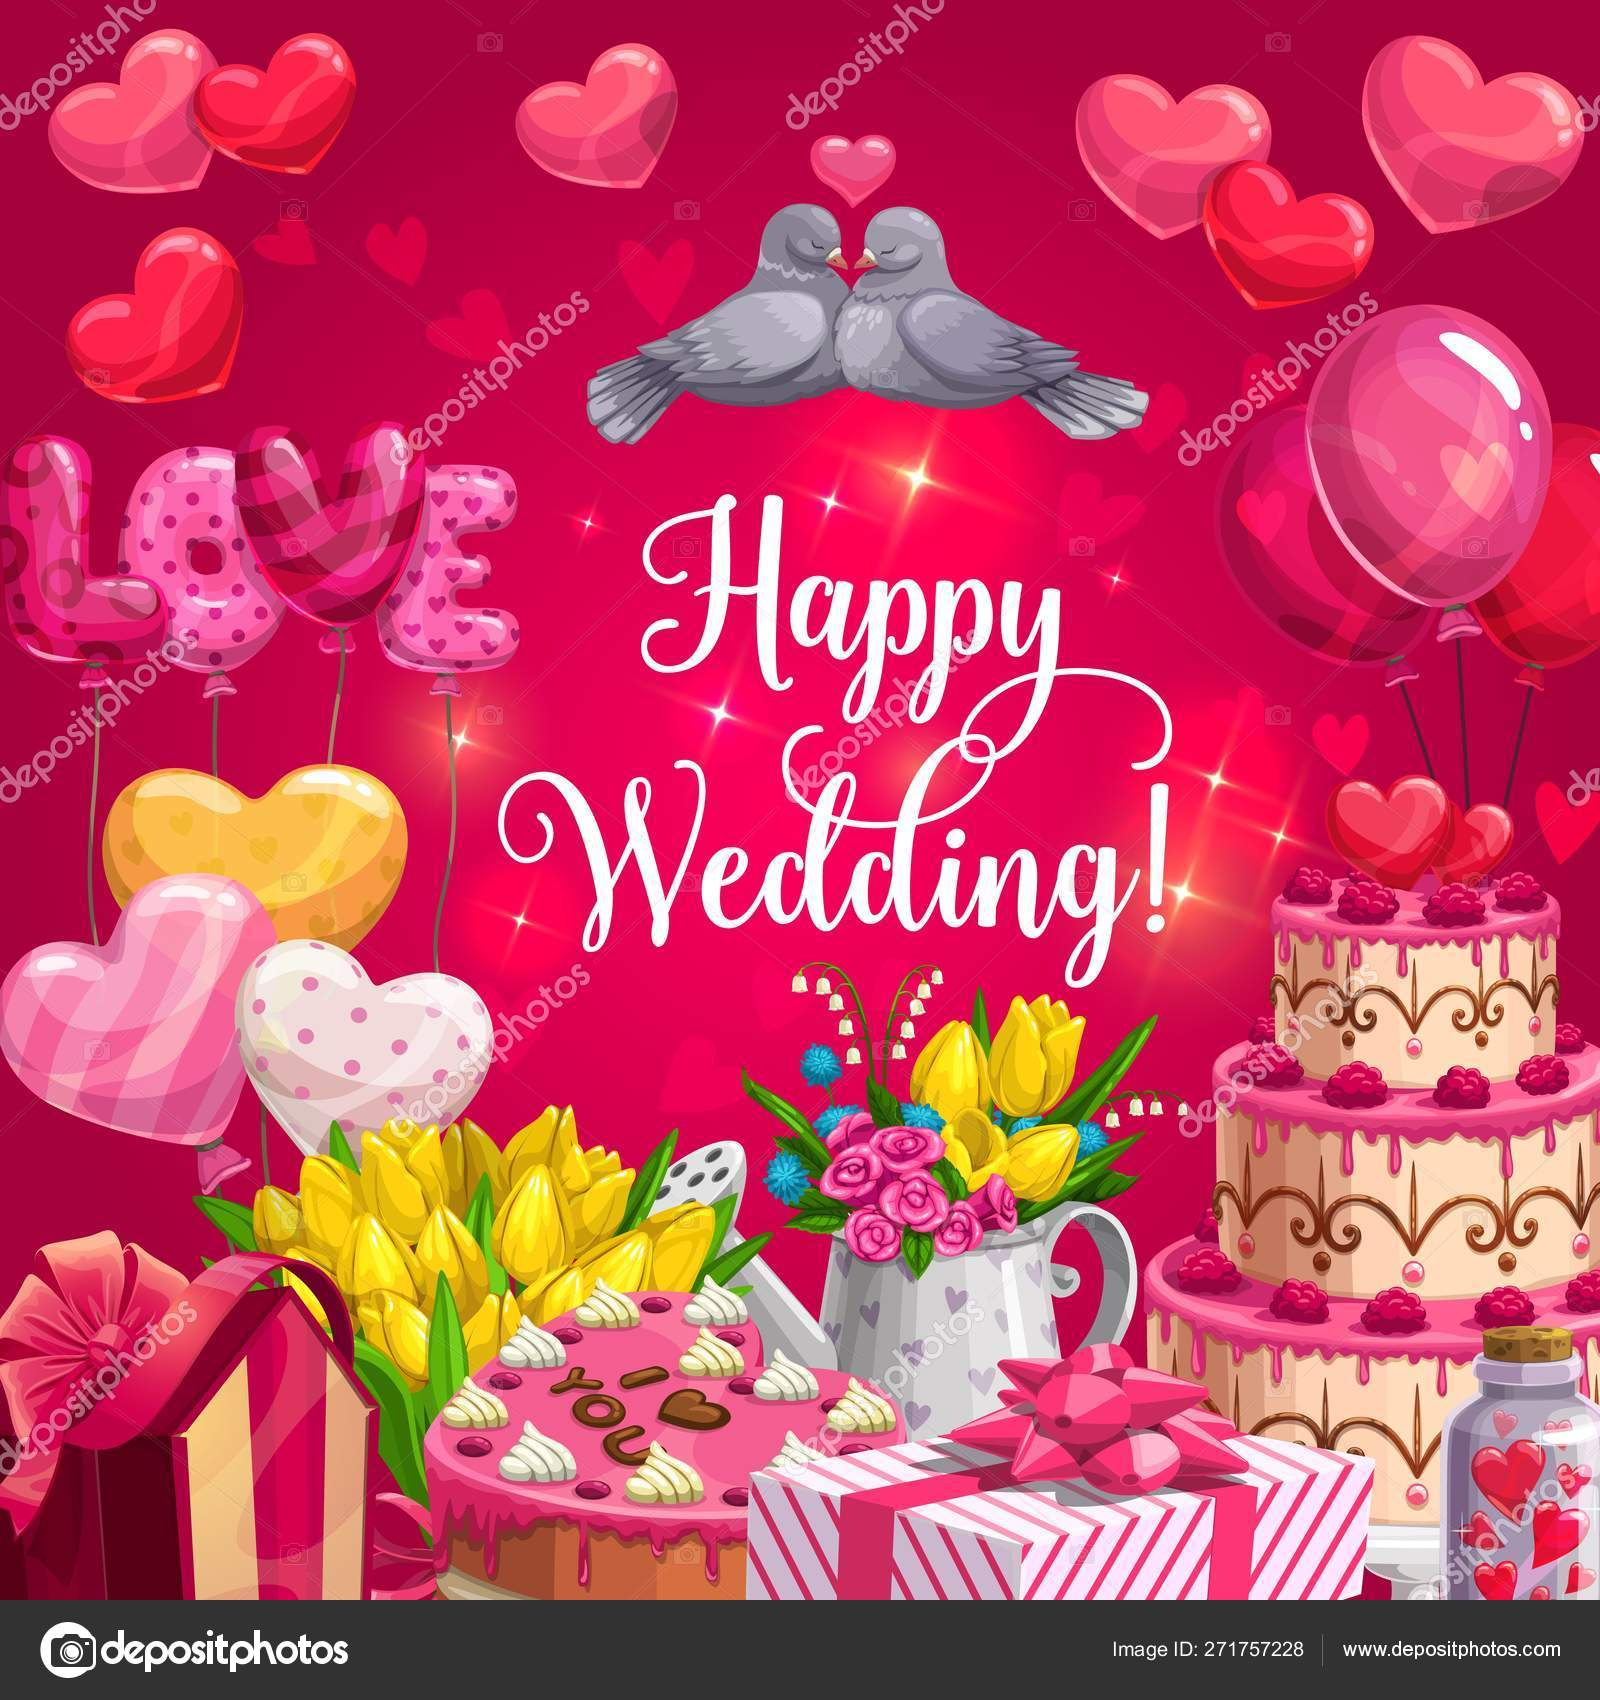 Happy Wedding Heart Cake Balloons And Flowers Stock Vector